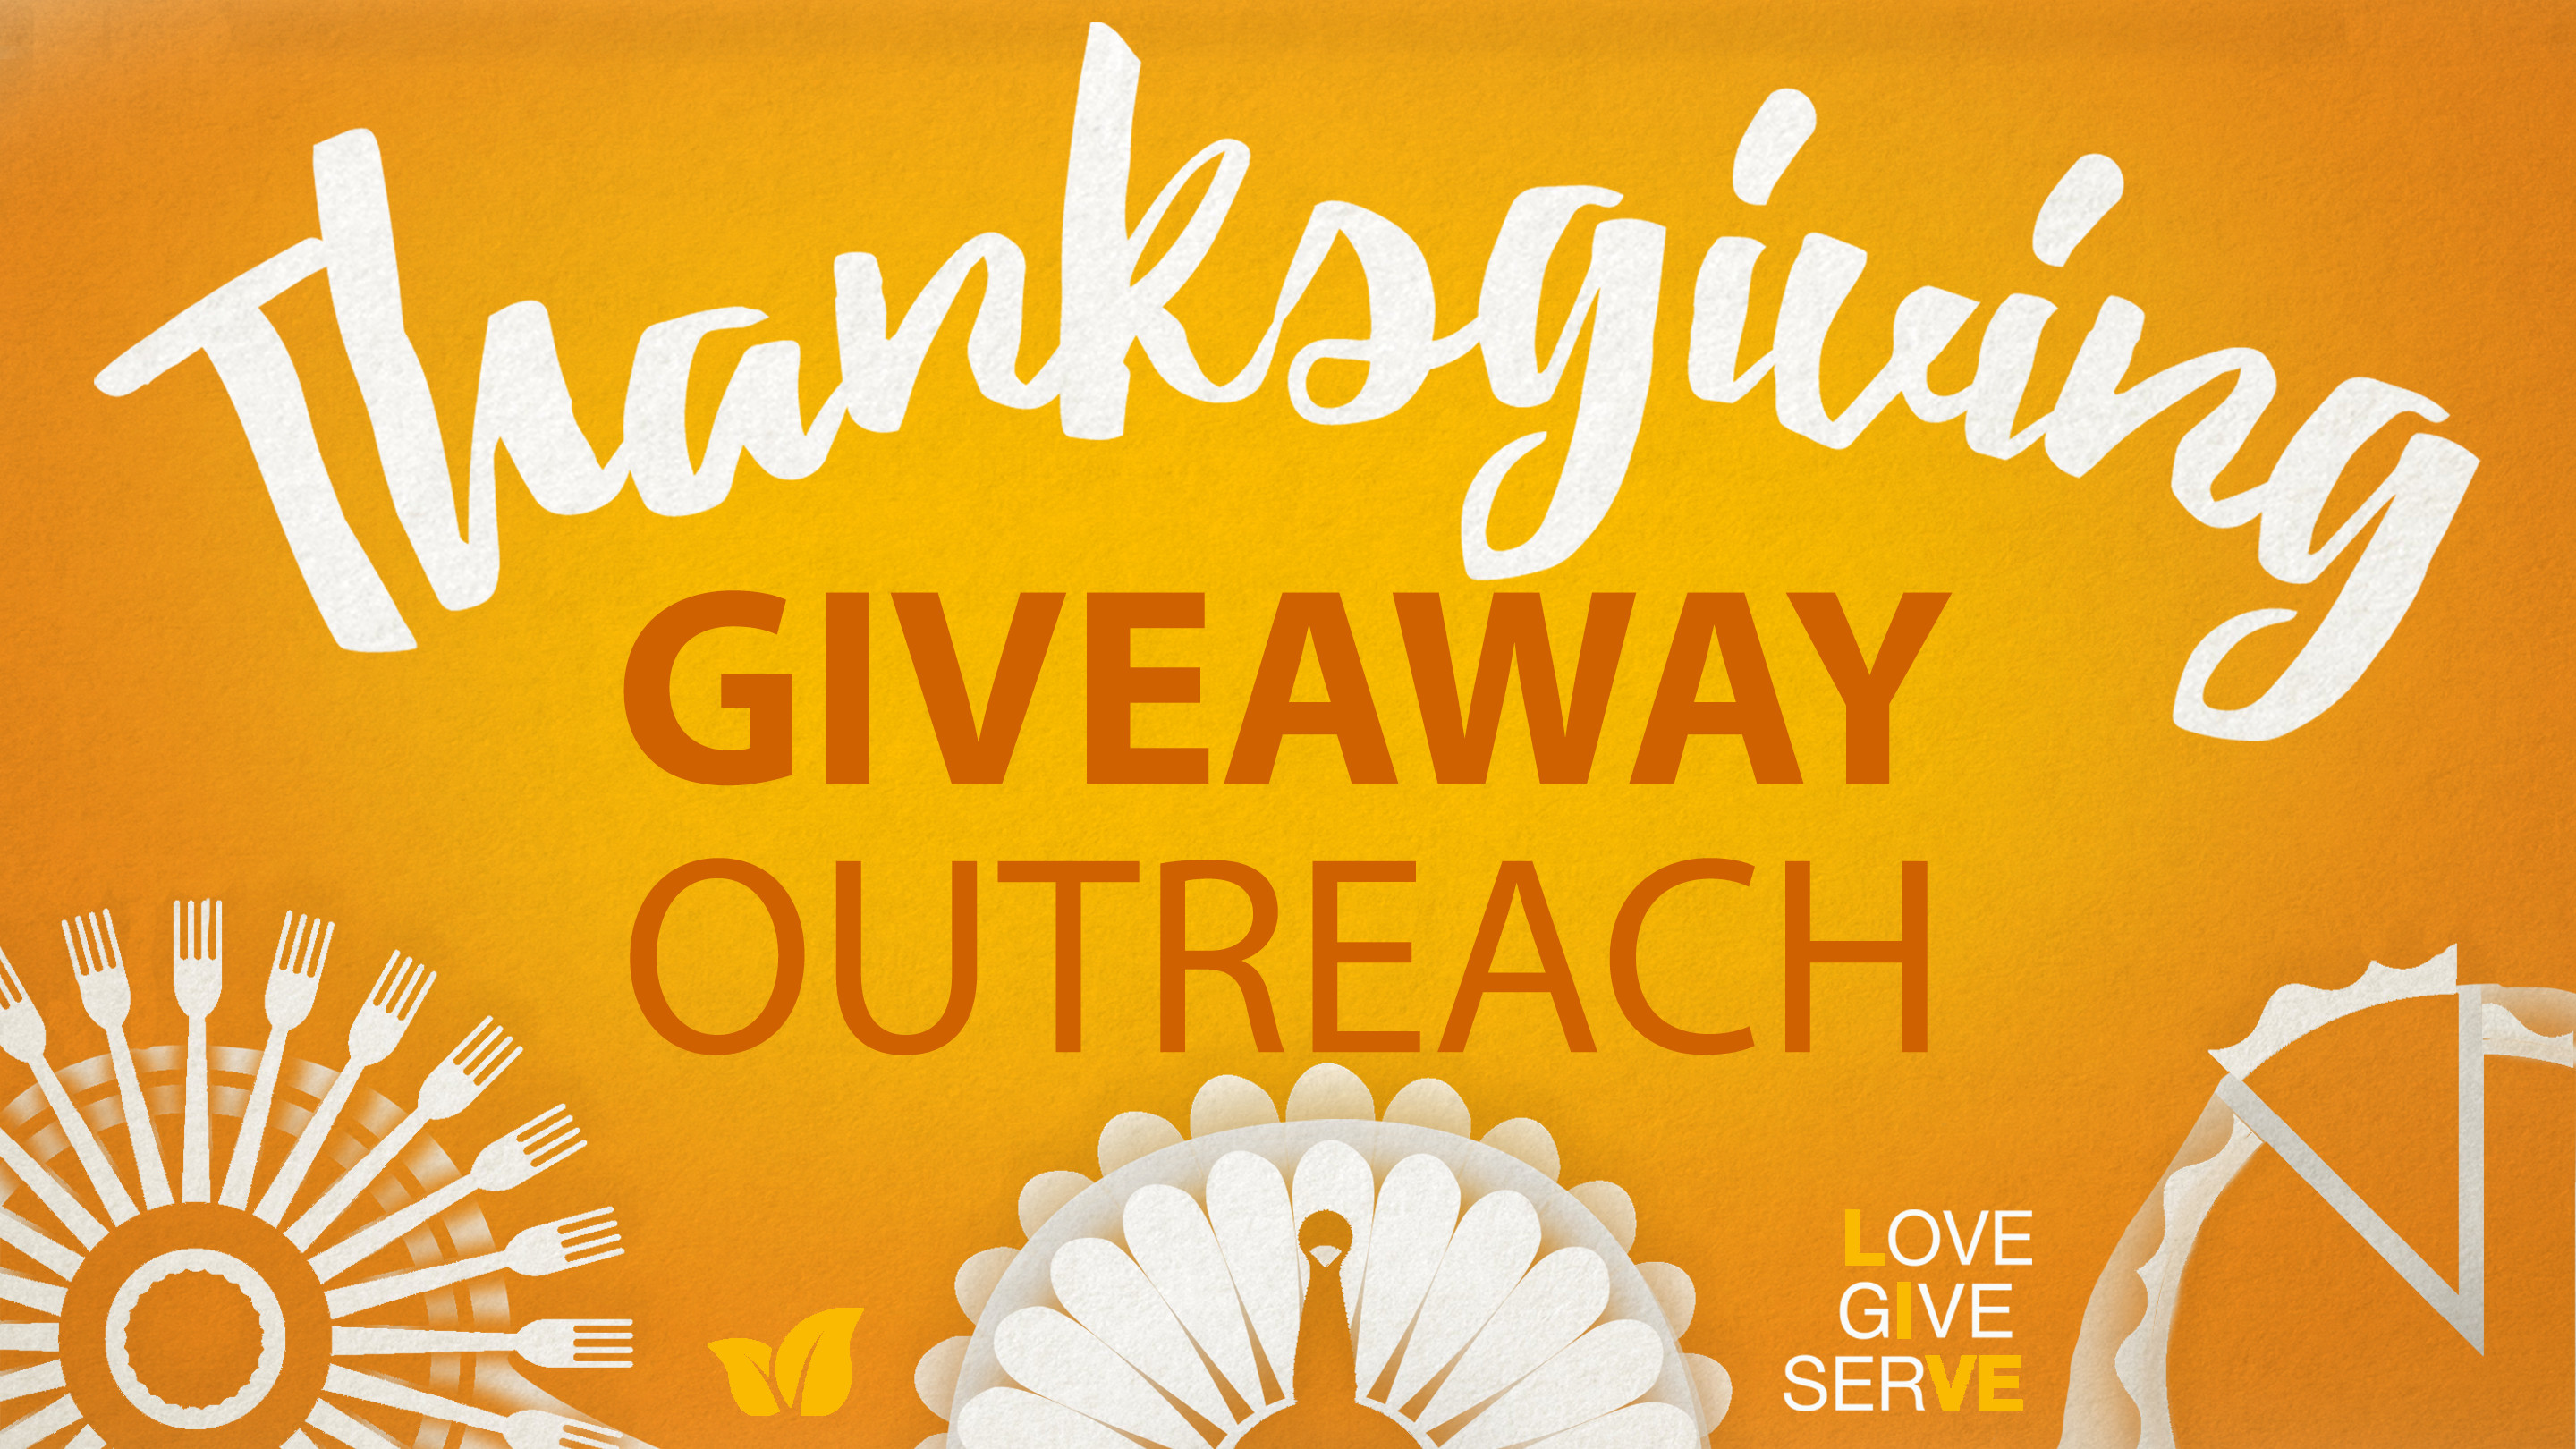 Thanksgiving Turkey Giveaway  Thanksgiving Giveaway Outreach — New Life Lehigh